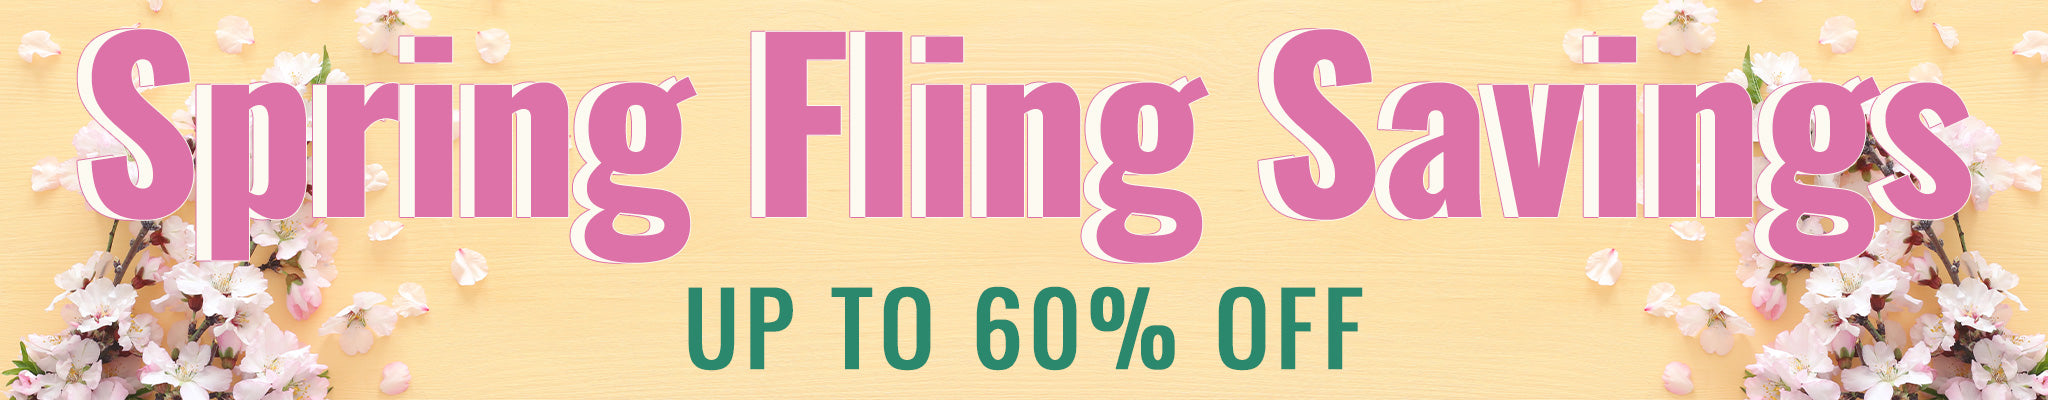 Spring Fling Savings